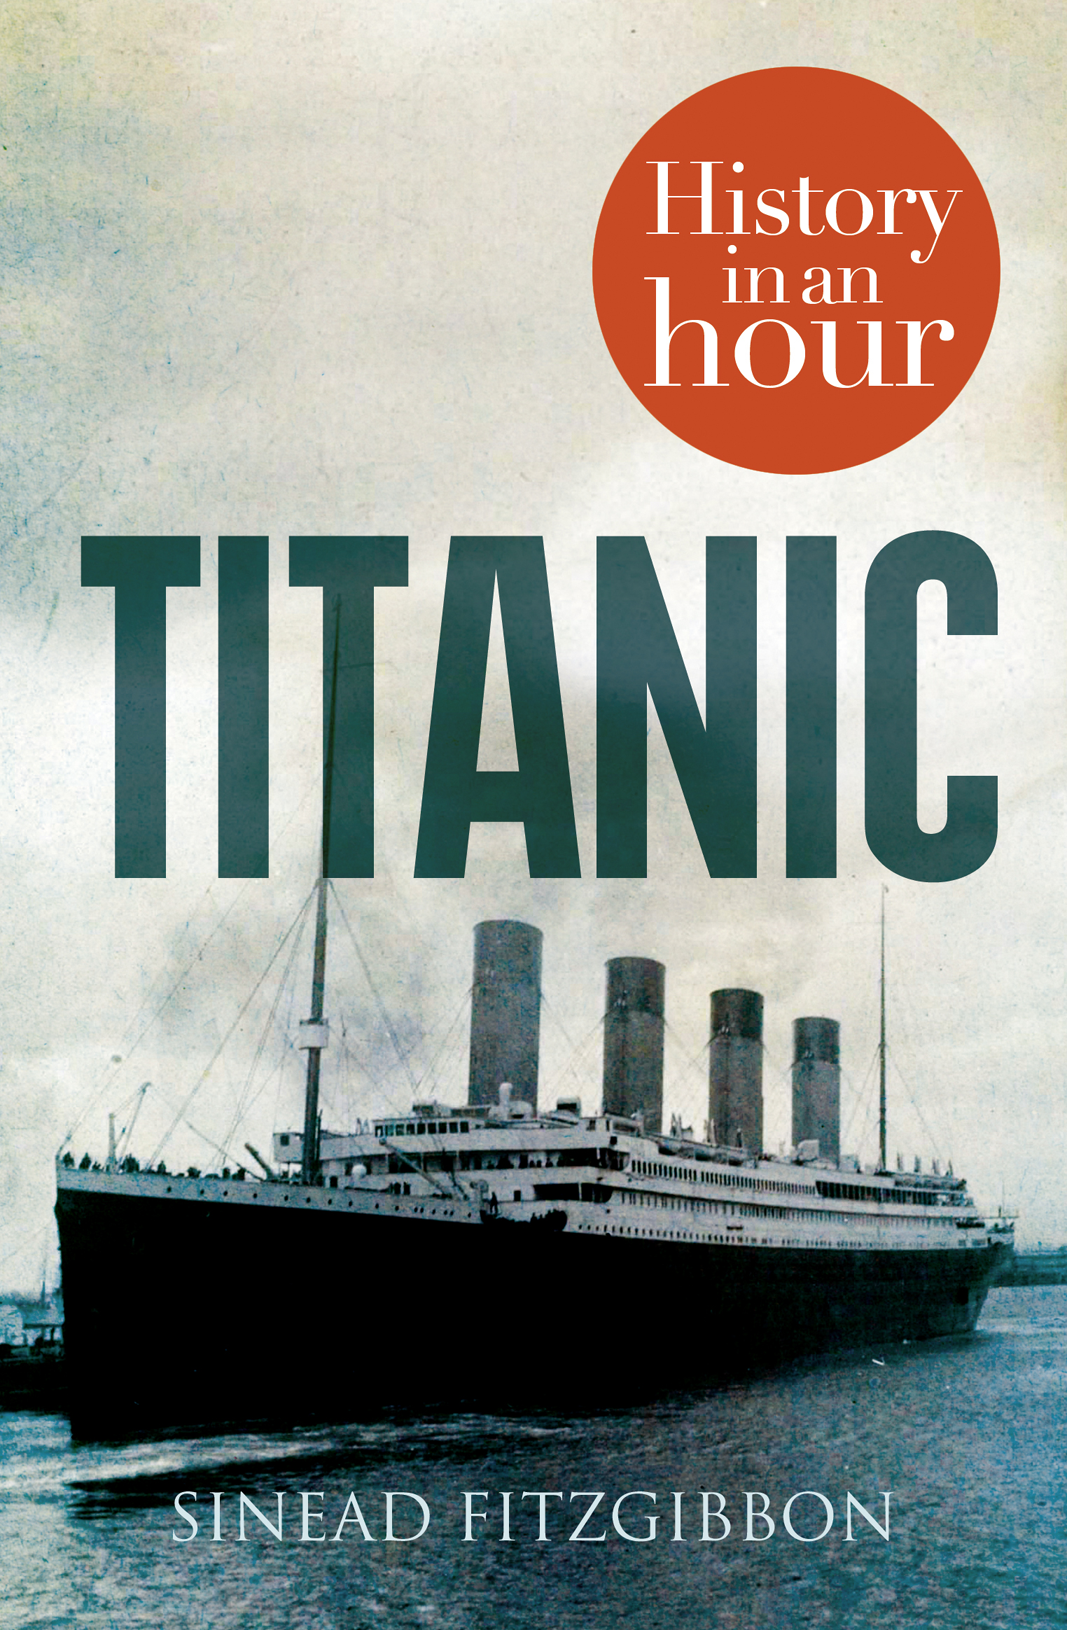 Sinead Fitzgibbon Titanic: History in an Hour o j anderson the hour of trial